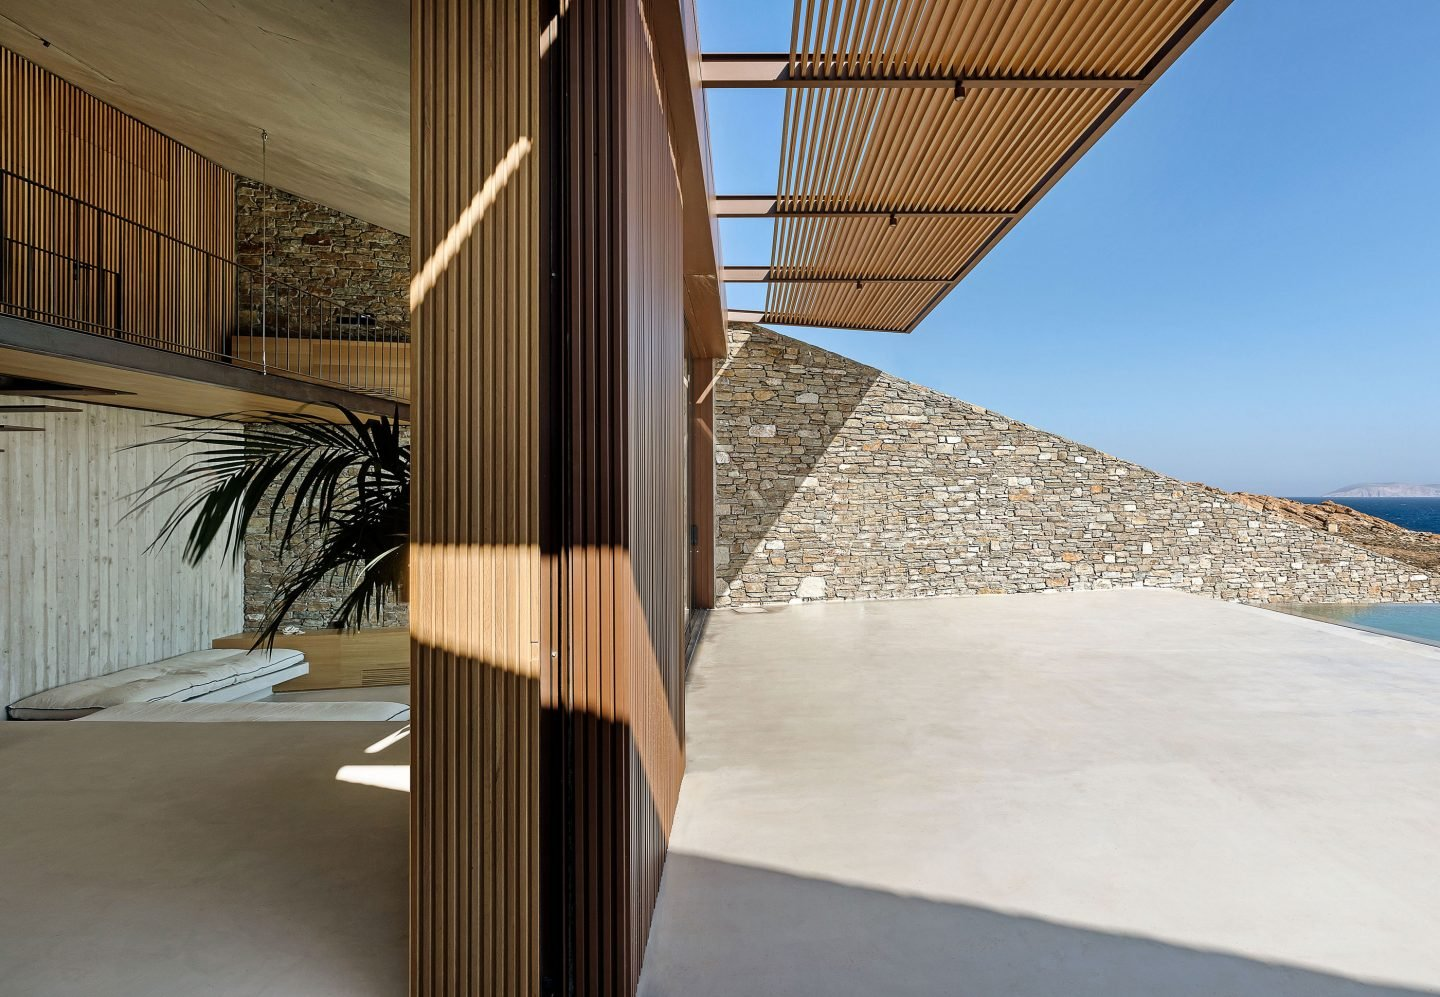 IGNANT-Architecture-Mold-NCaved-011